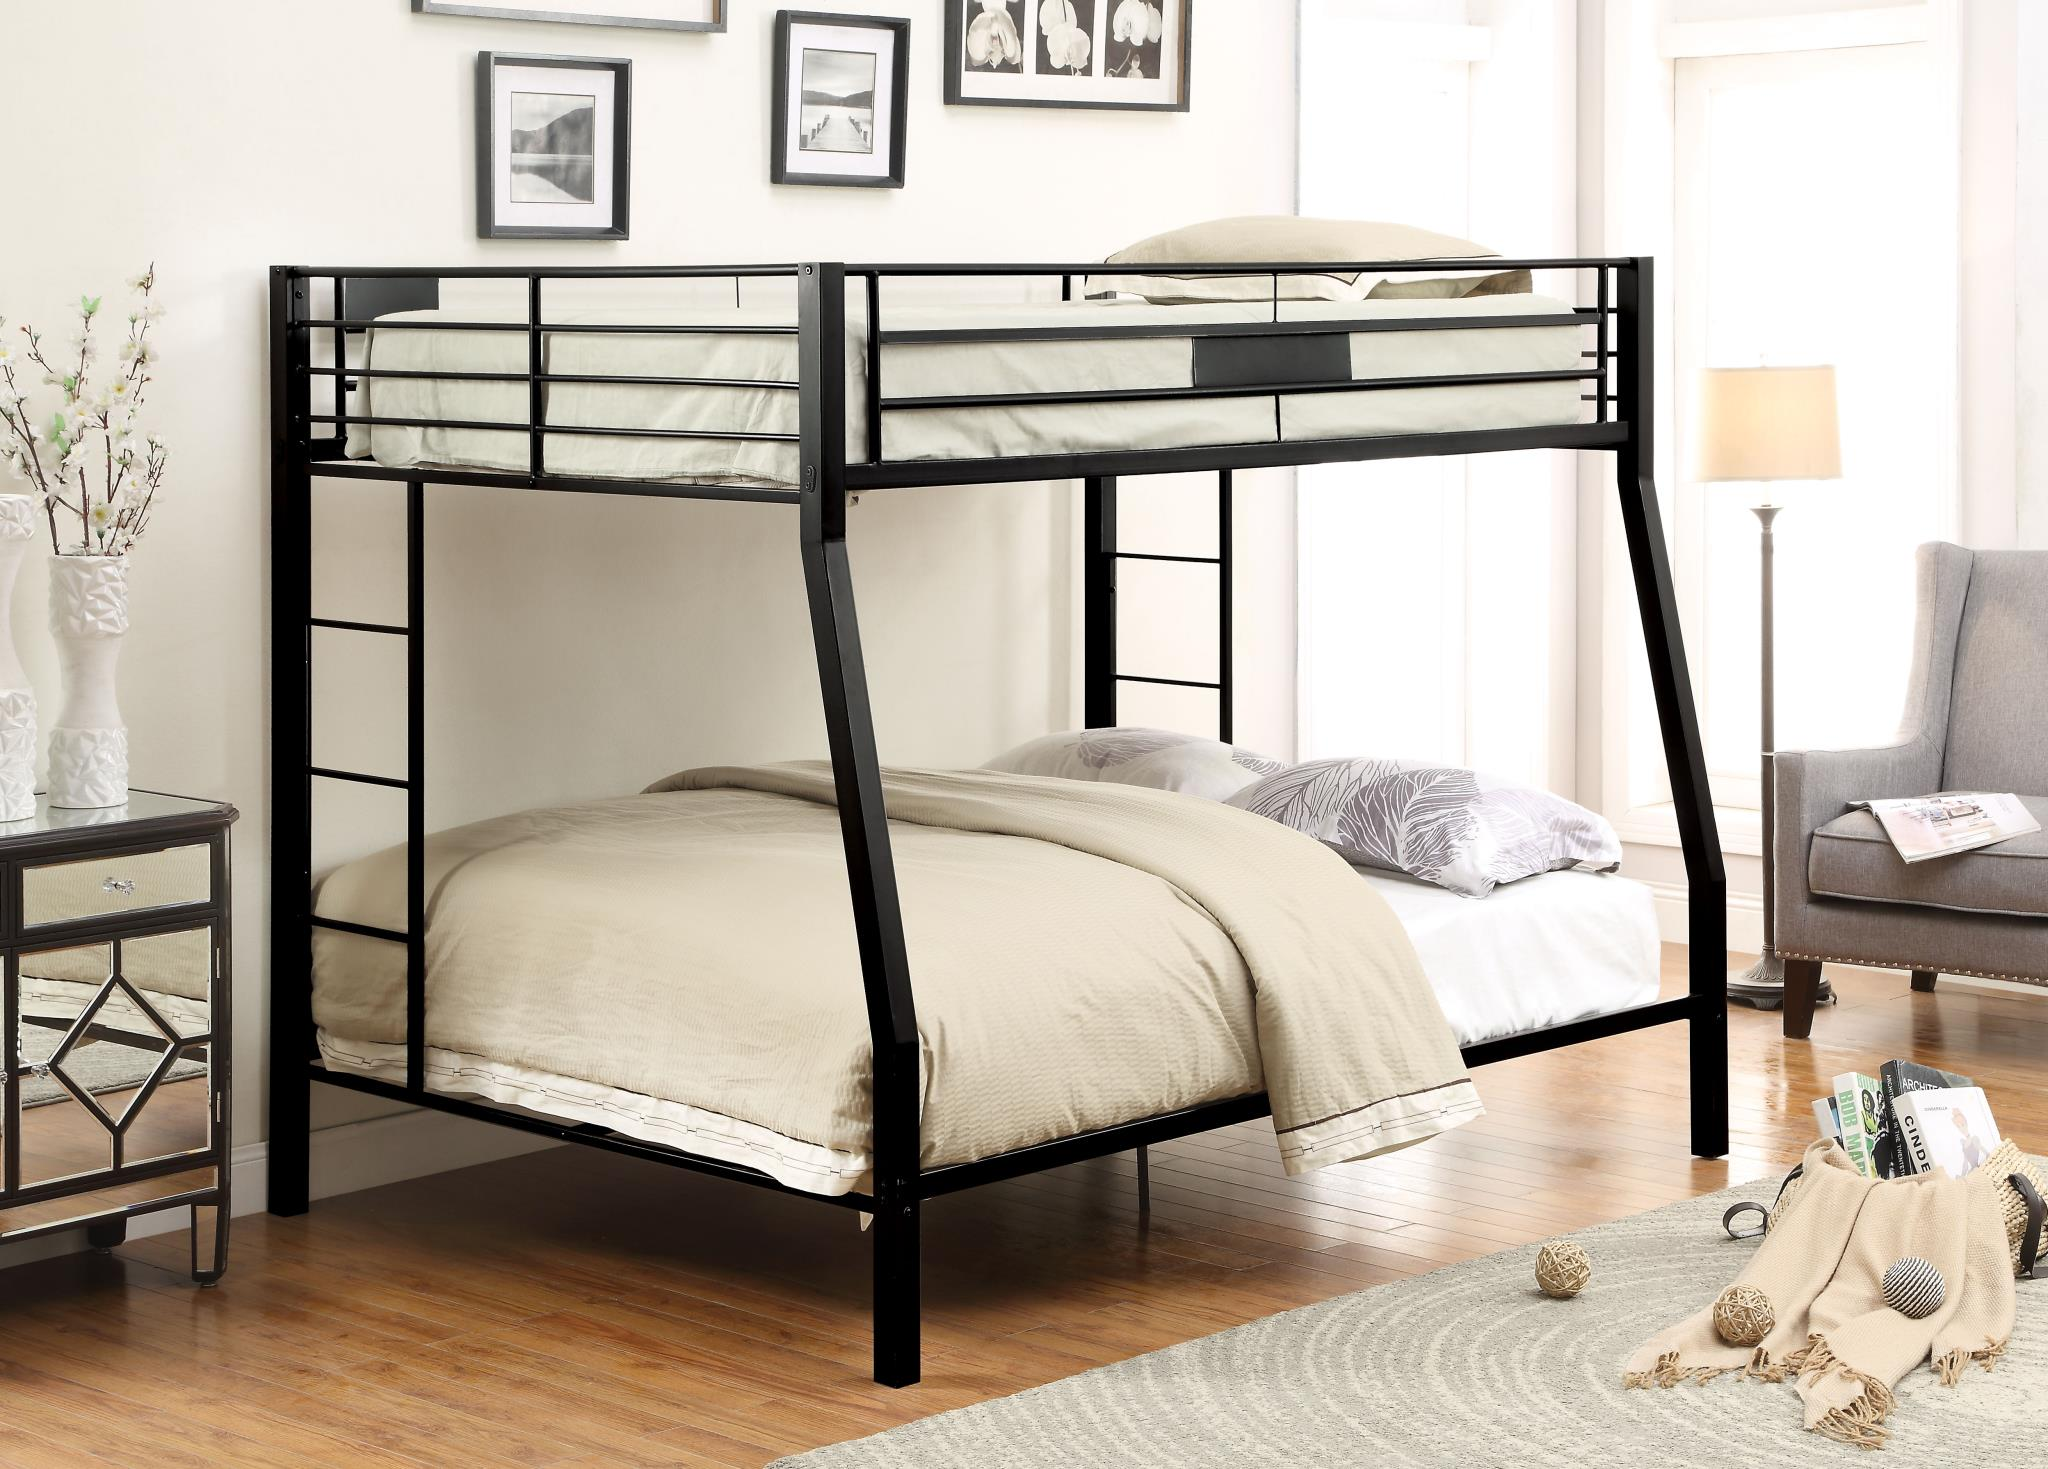 Full XL/Queen Bunk Bed